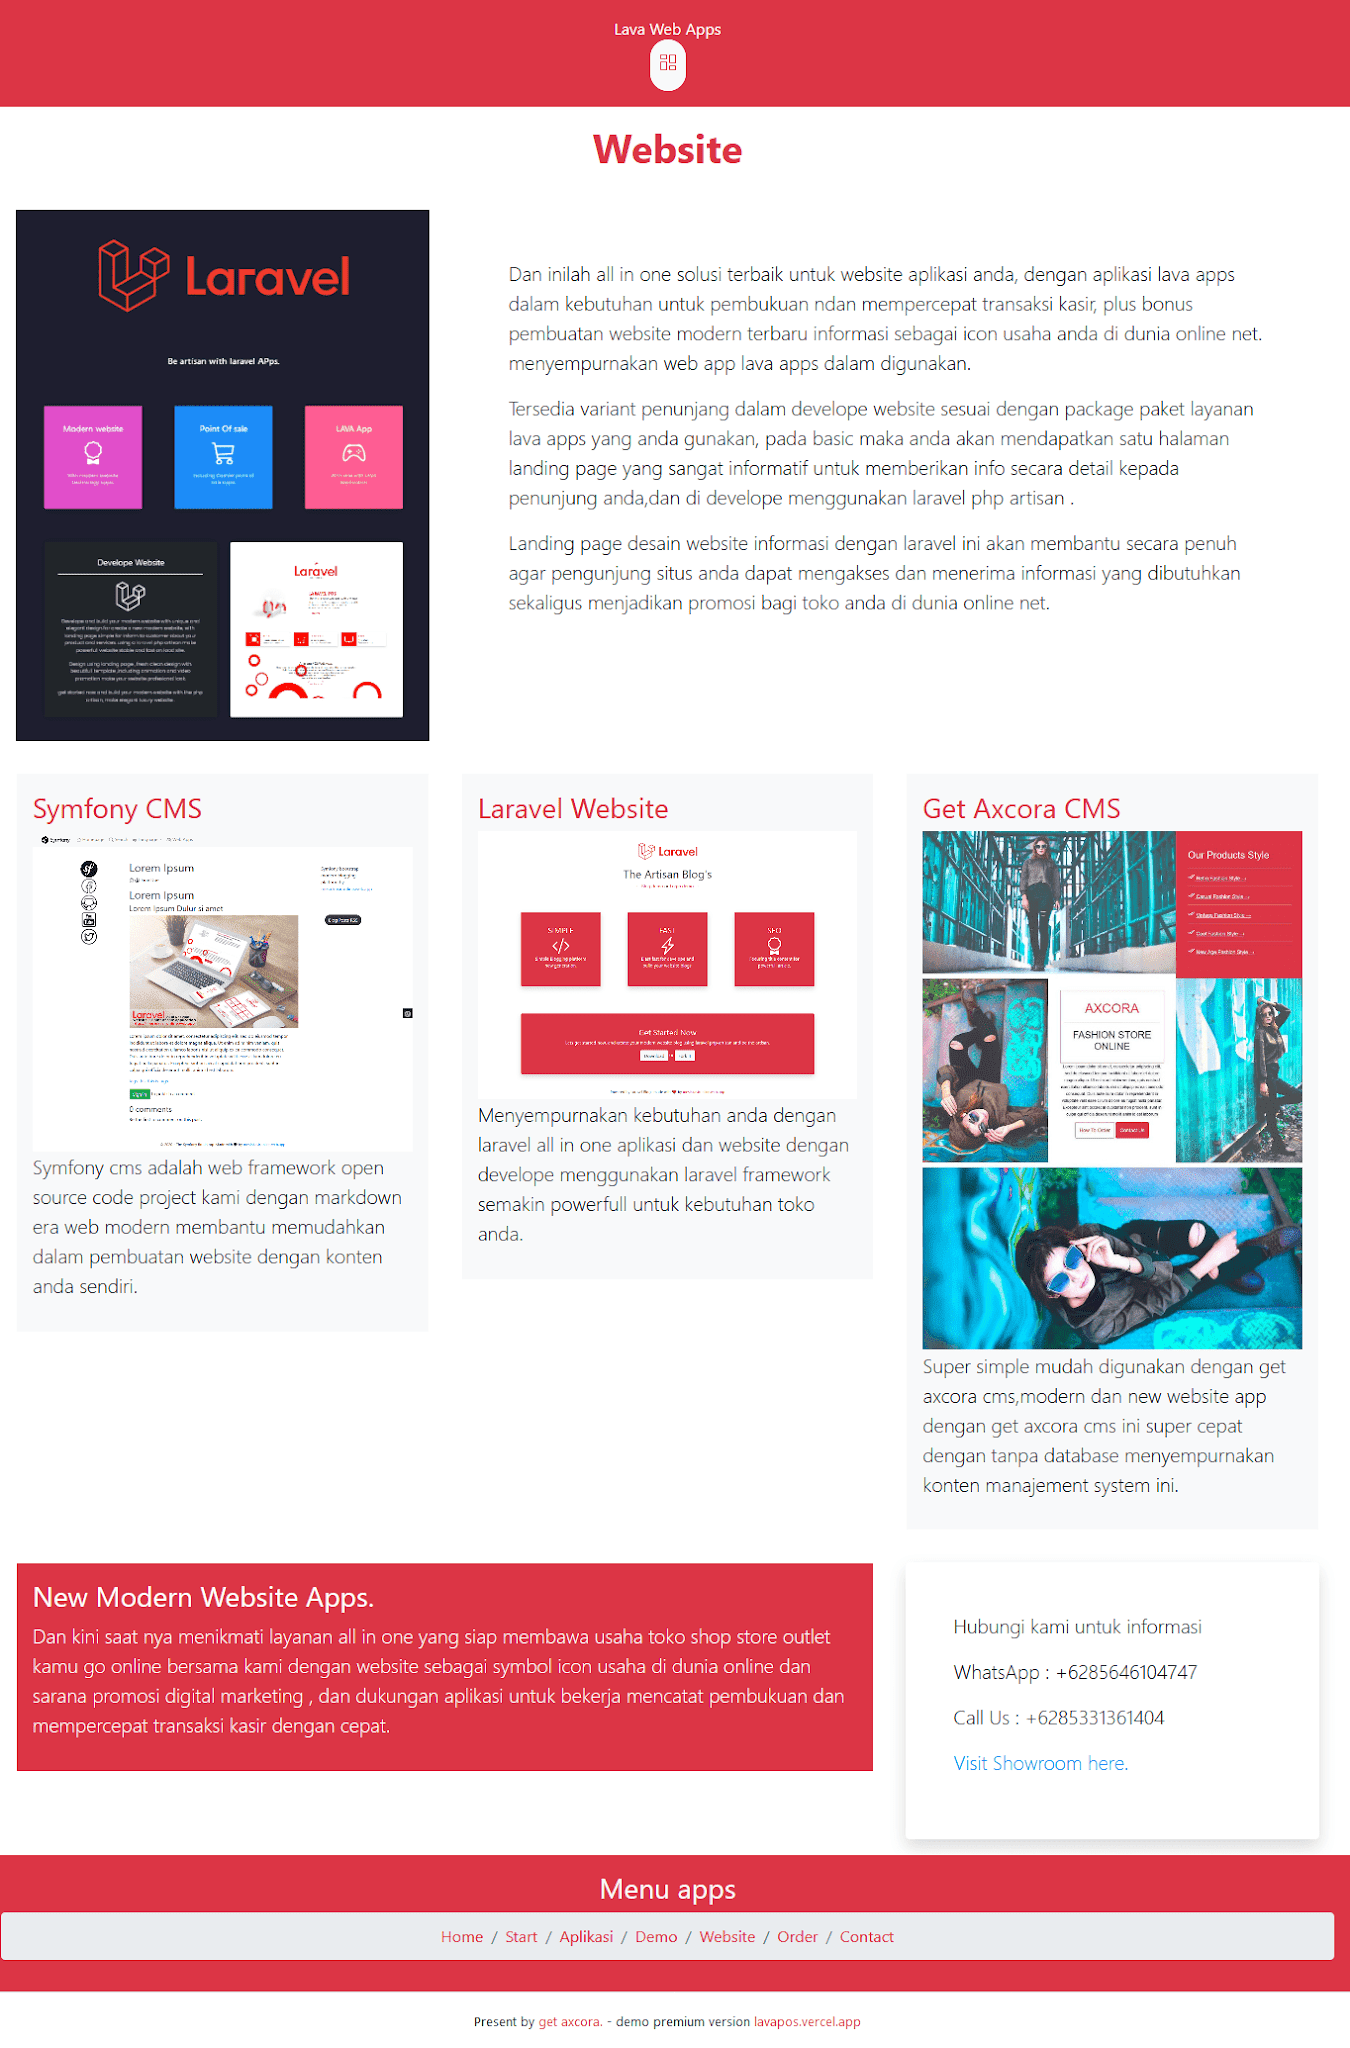 Bootstrap React free download website template themes gratis source code